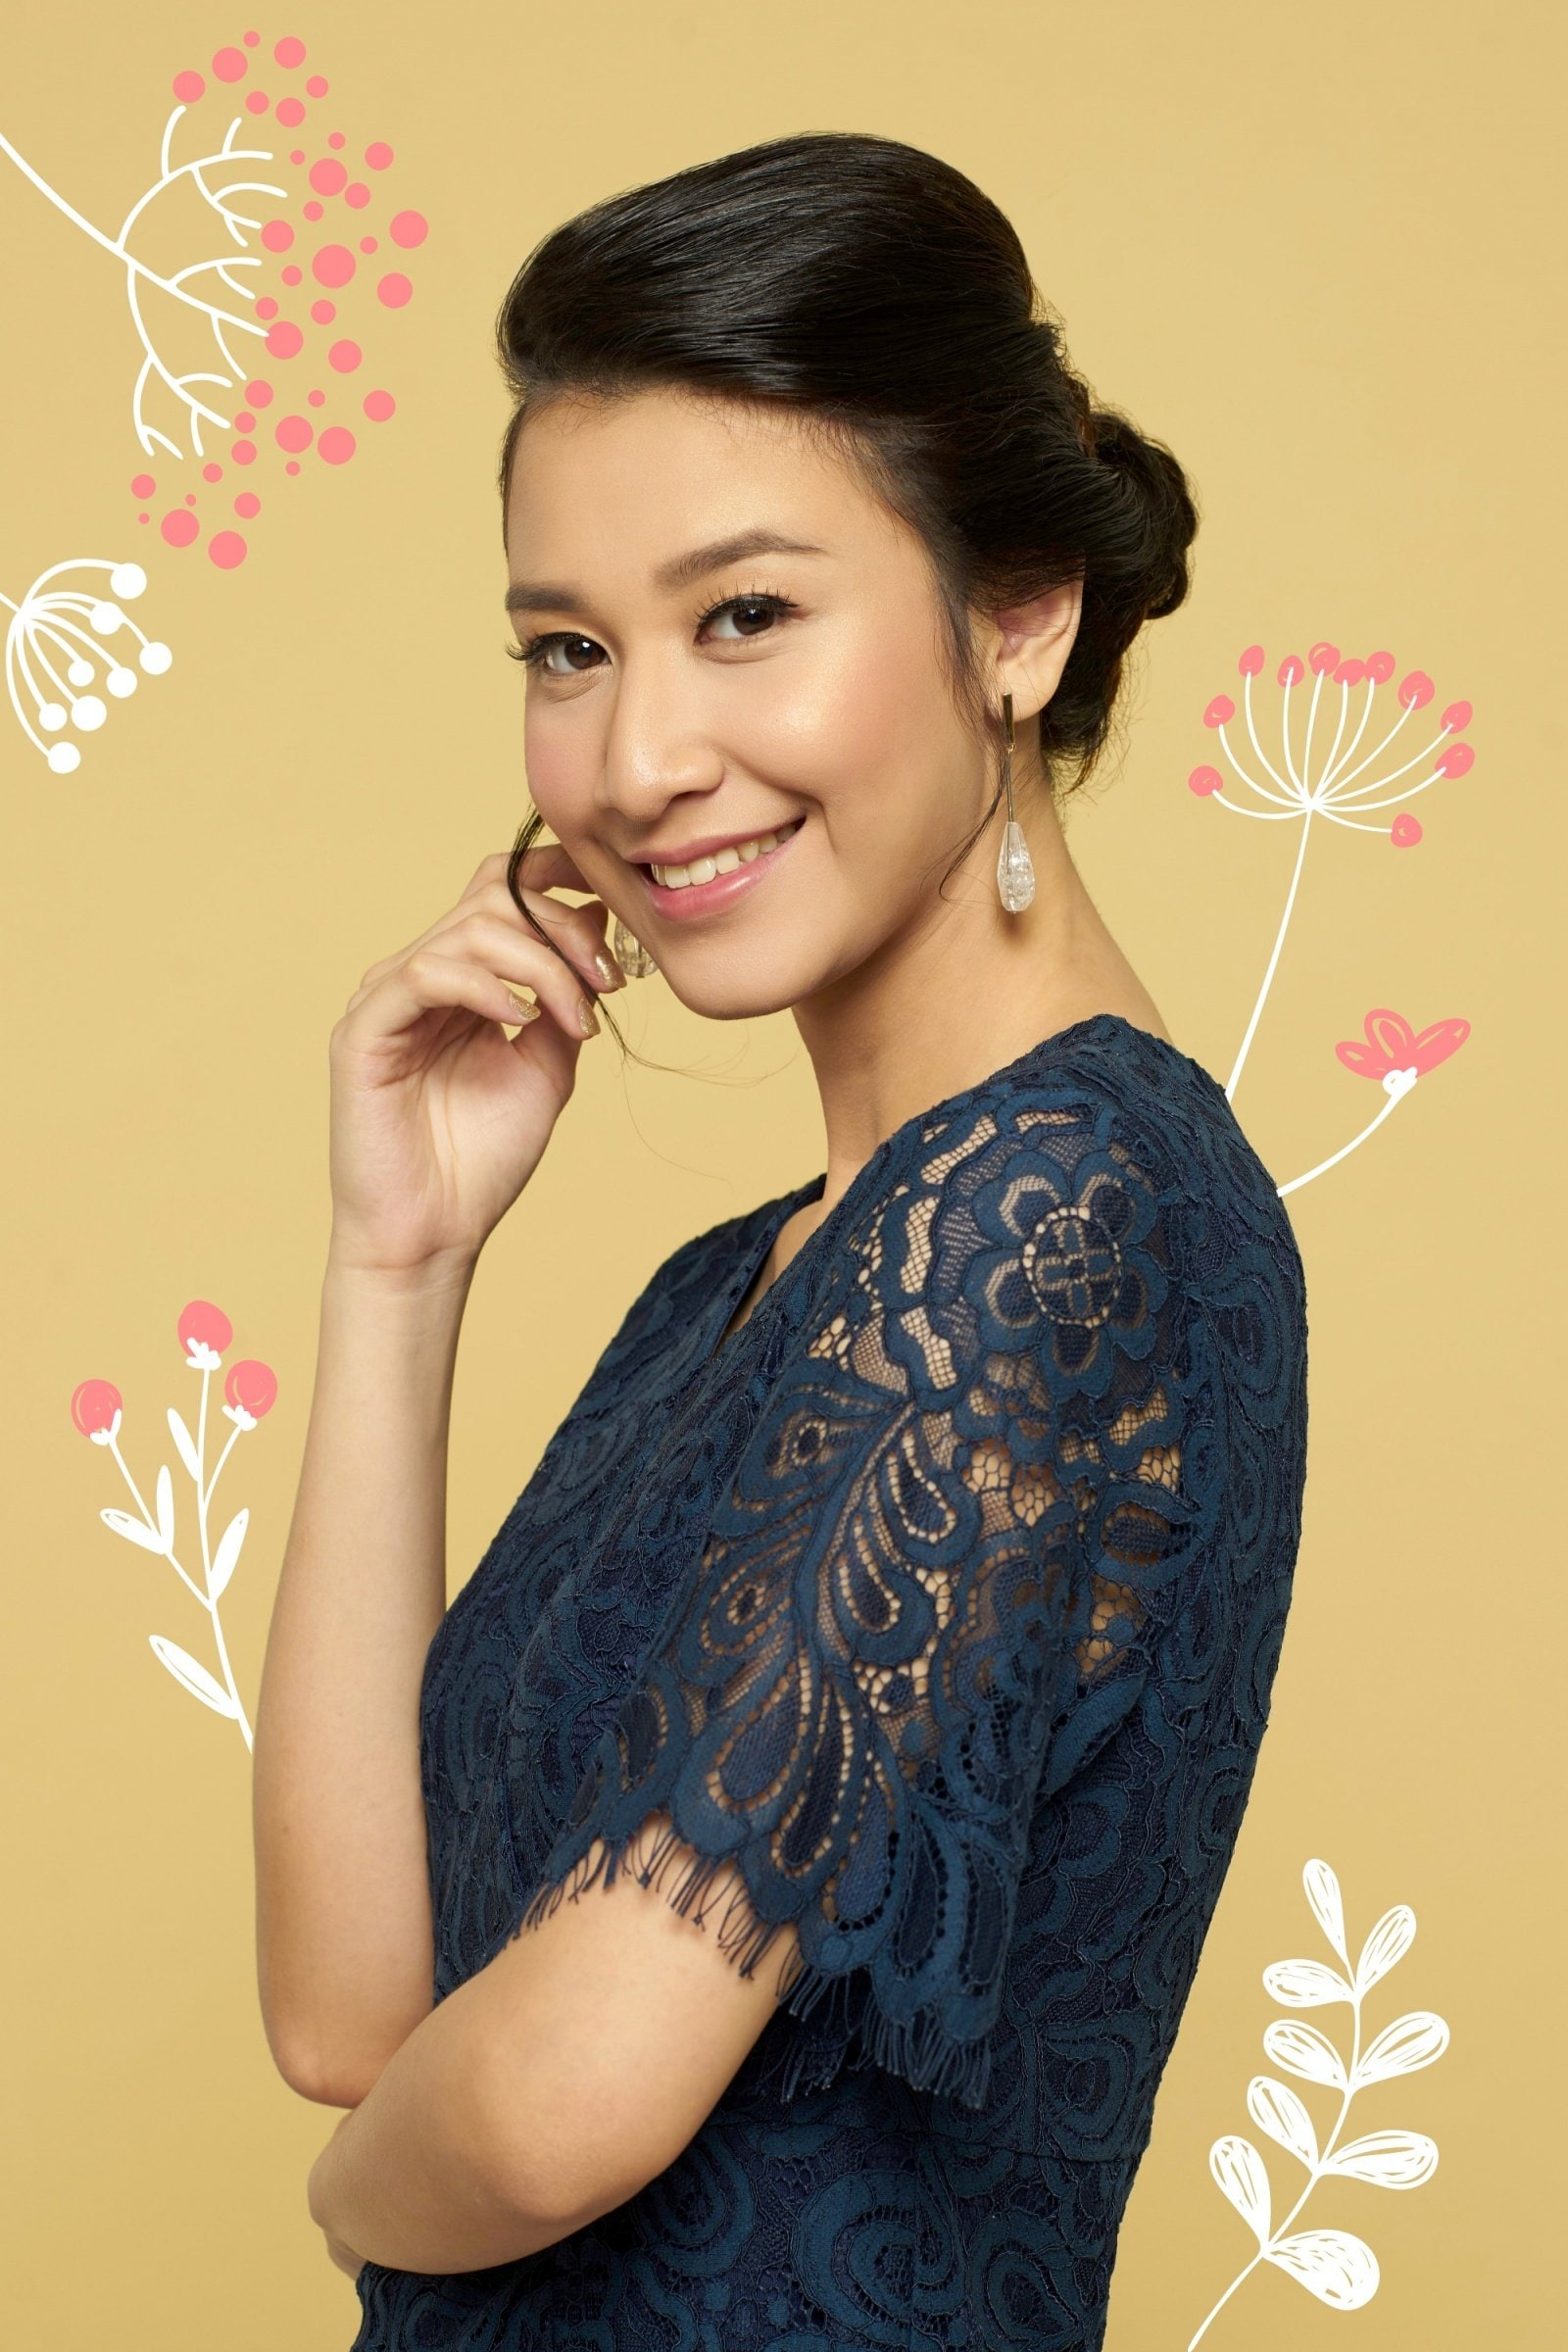 Flores de Mayo hairstyles: Asian woman smiling with long hair in a lazy bun